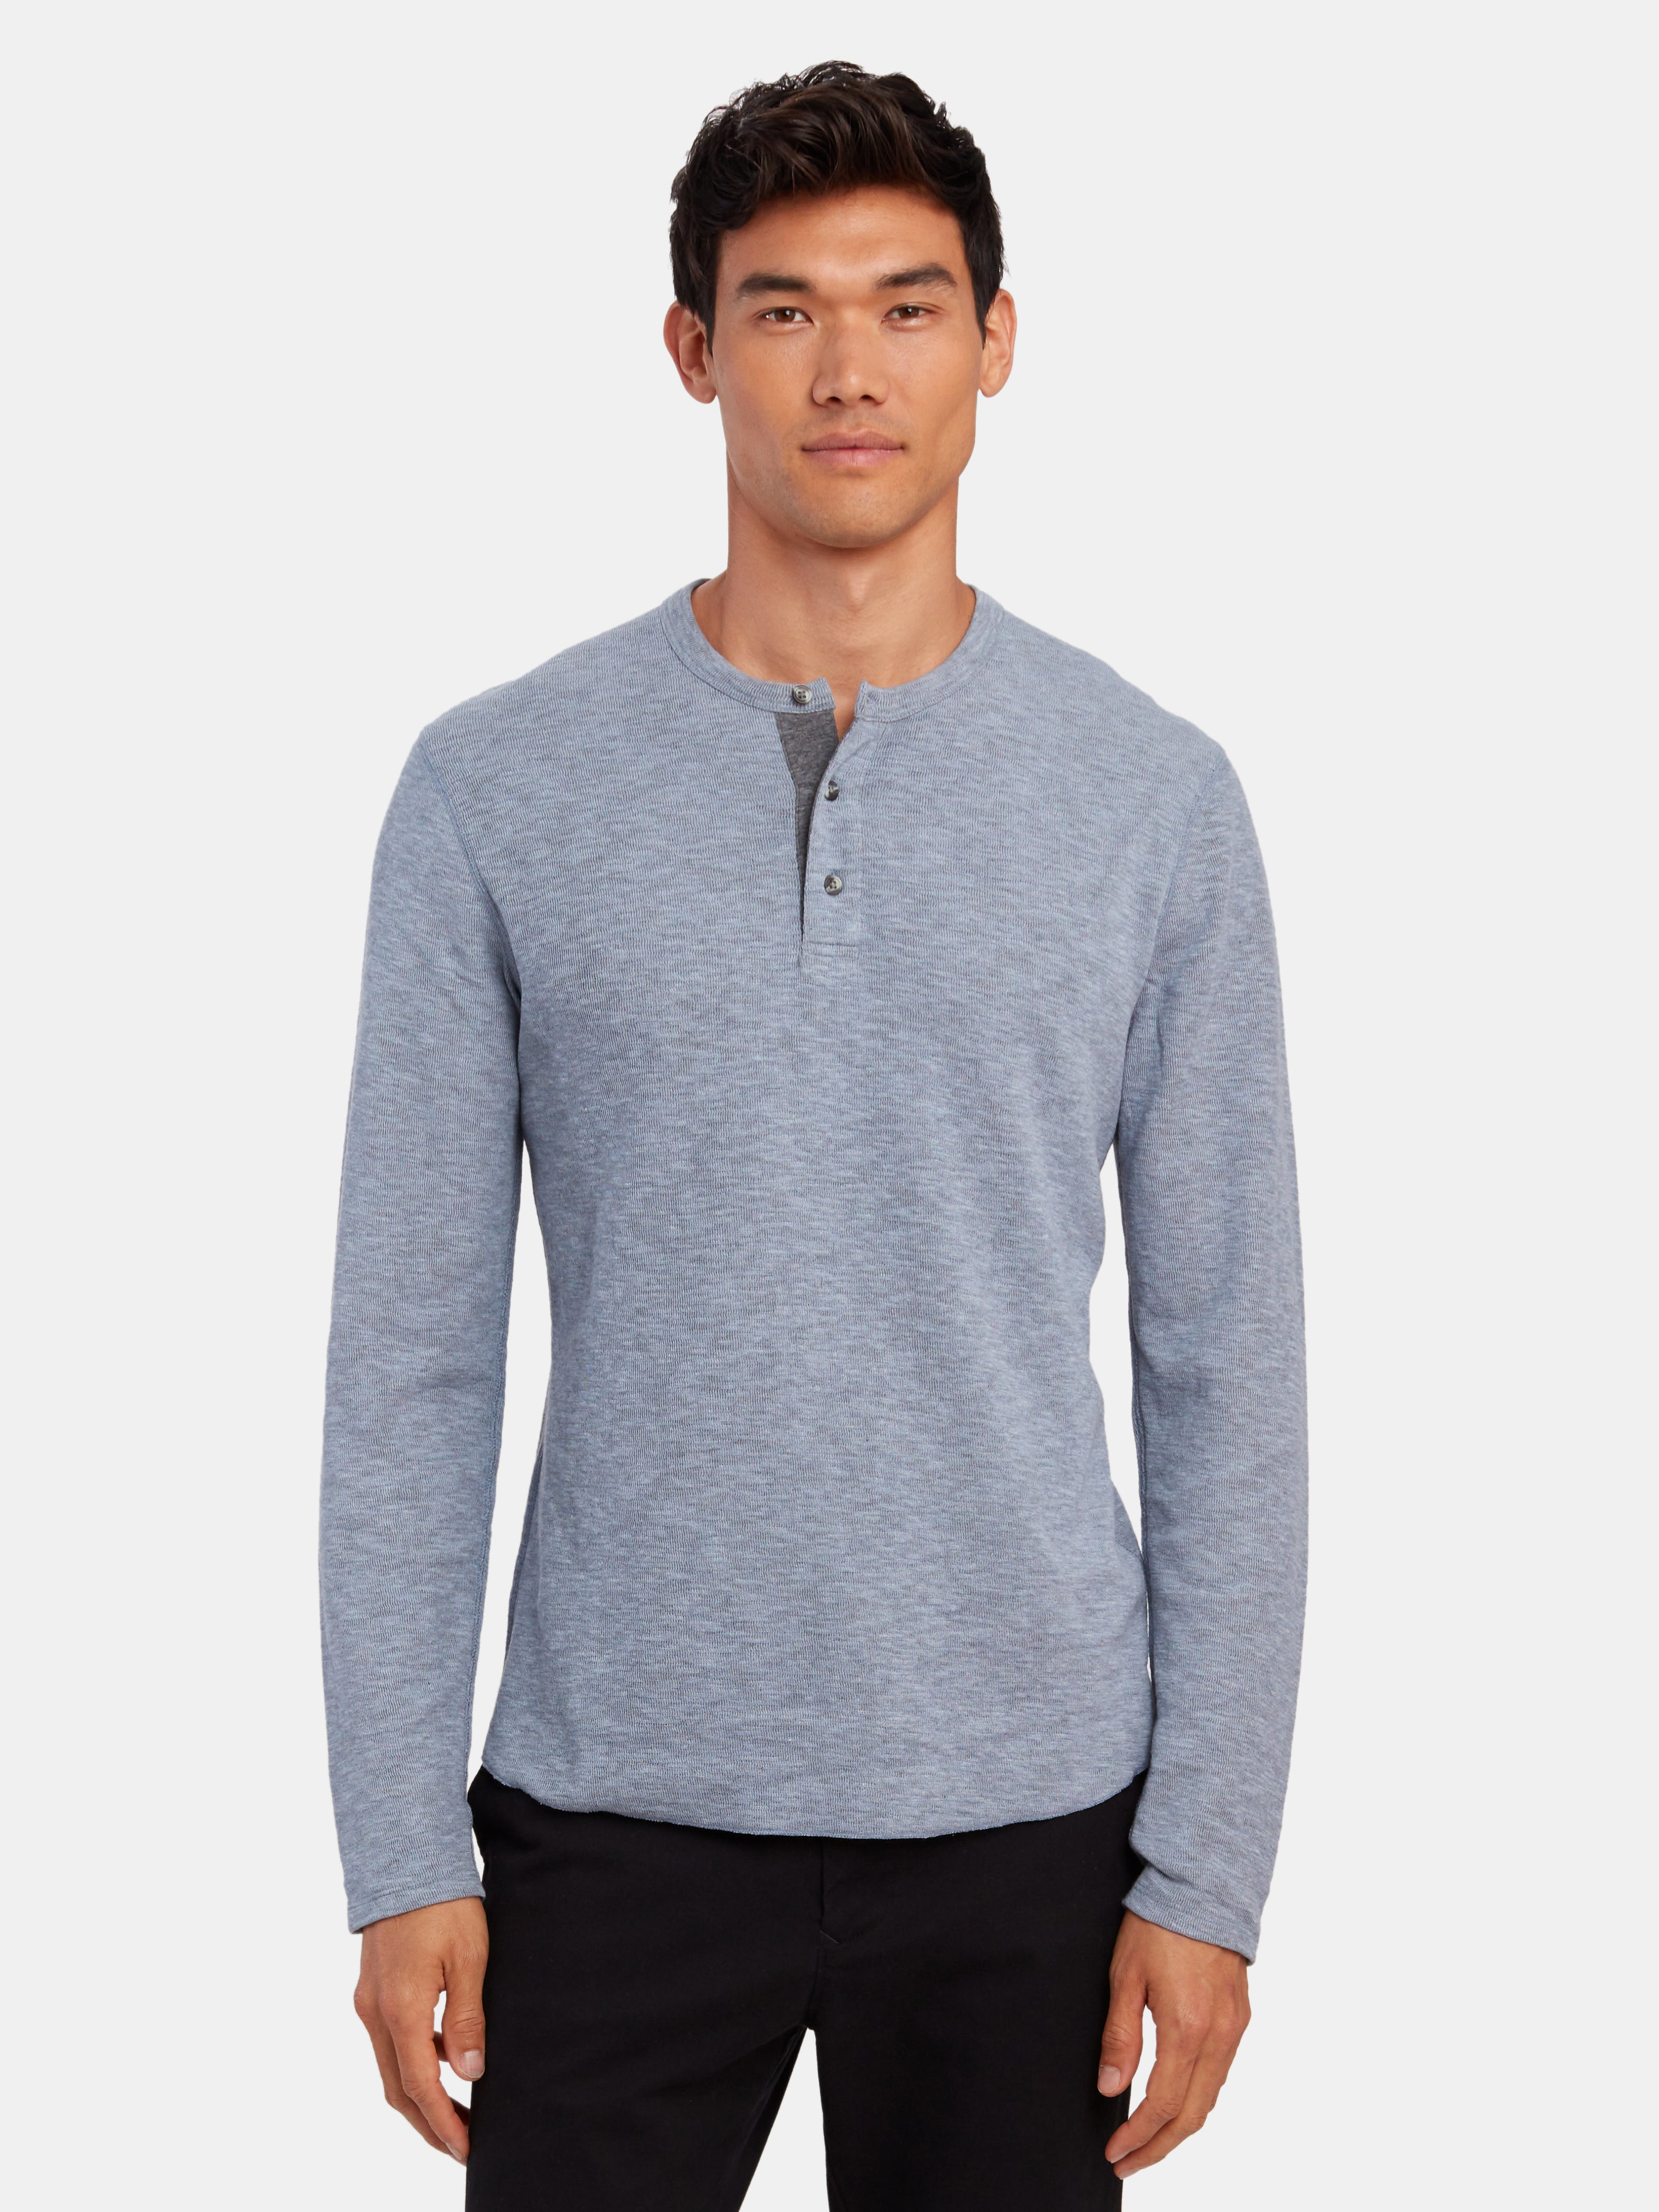 Theory Men/'s Navy Activate Jersey Snap Henley Long Sleeve Shirt